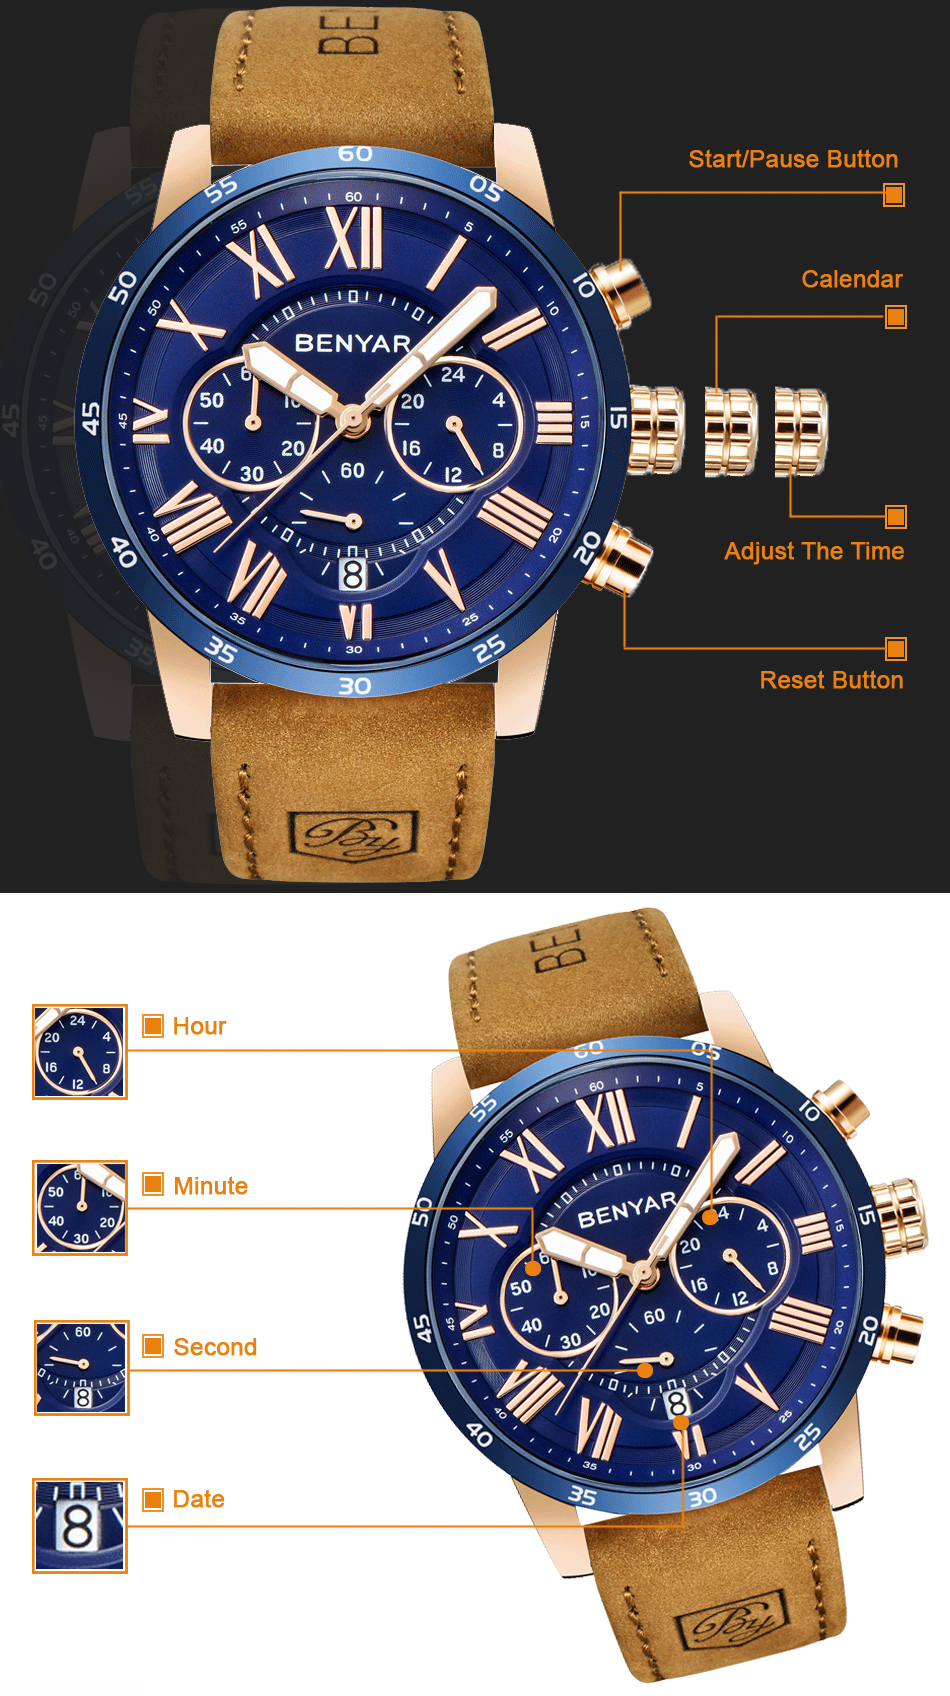 HTB1yZoQRrPpK1RjSZFFq6y5PpXaB 2019 Top Luxury Brand BENYAR Fashion Blue Watches Men Quartz Watch Male Chronograph Leather WristWatch Relogio Masculino